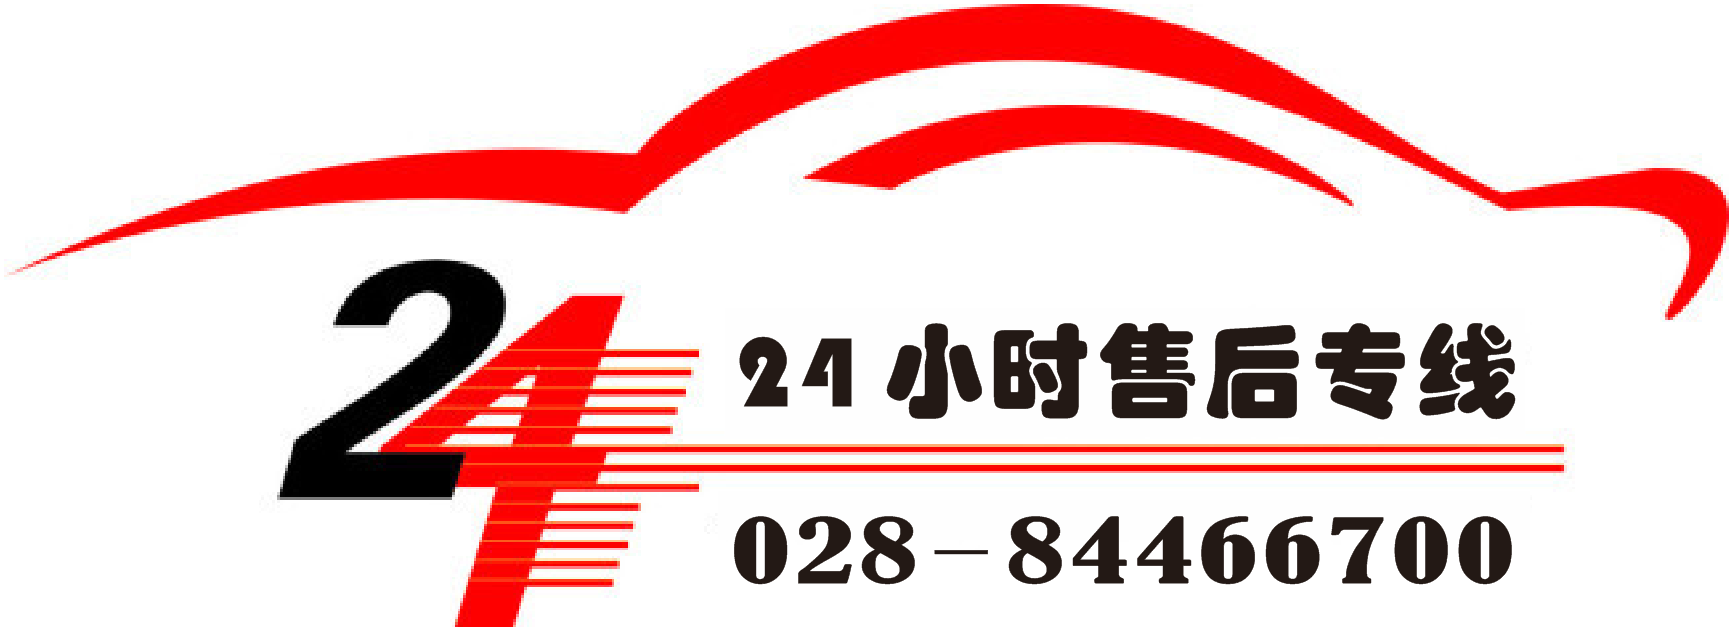 1495206143(1).png